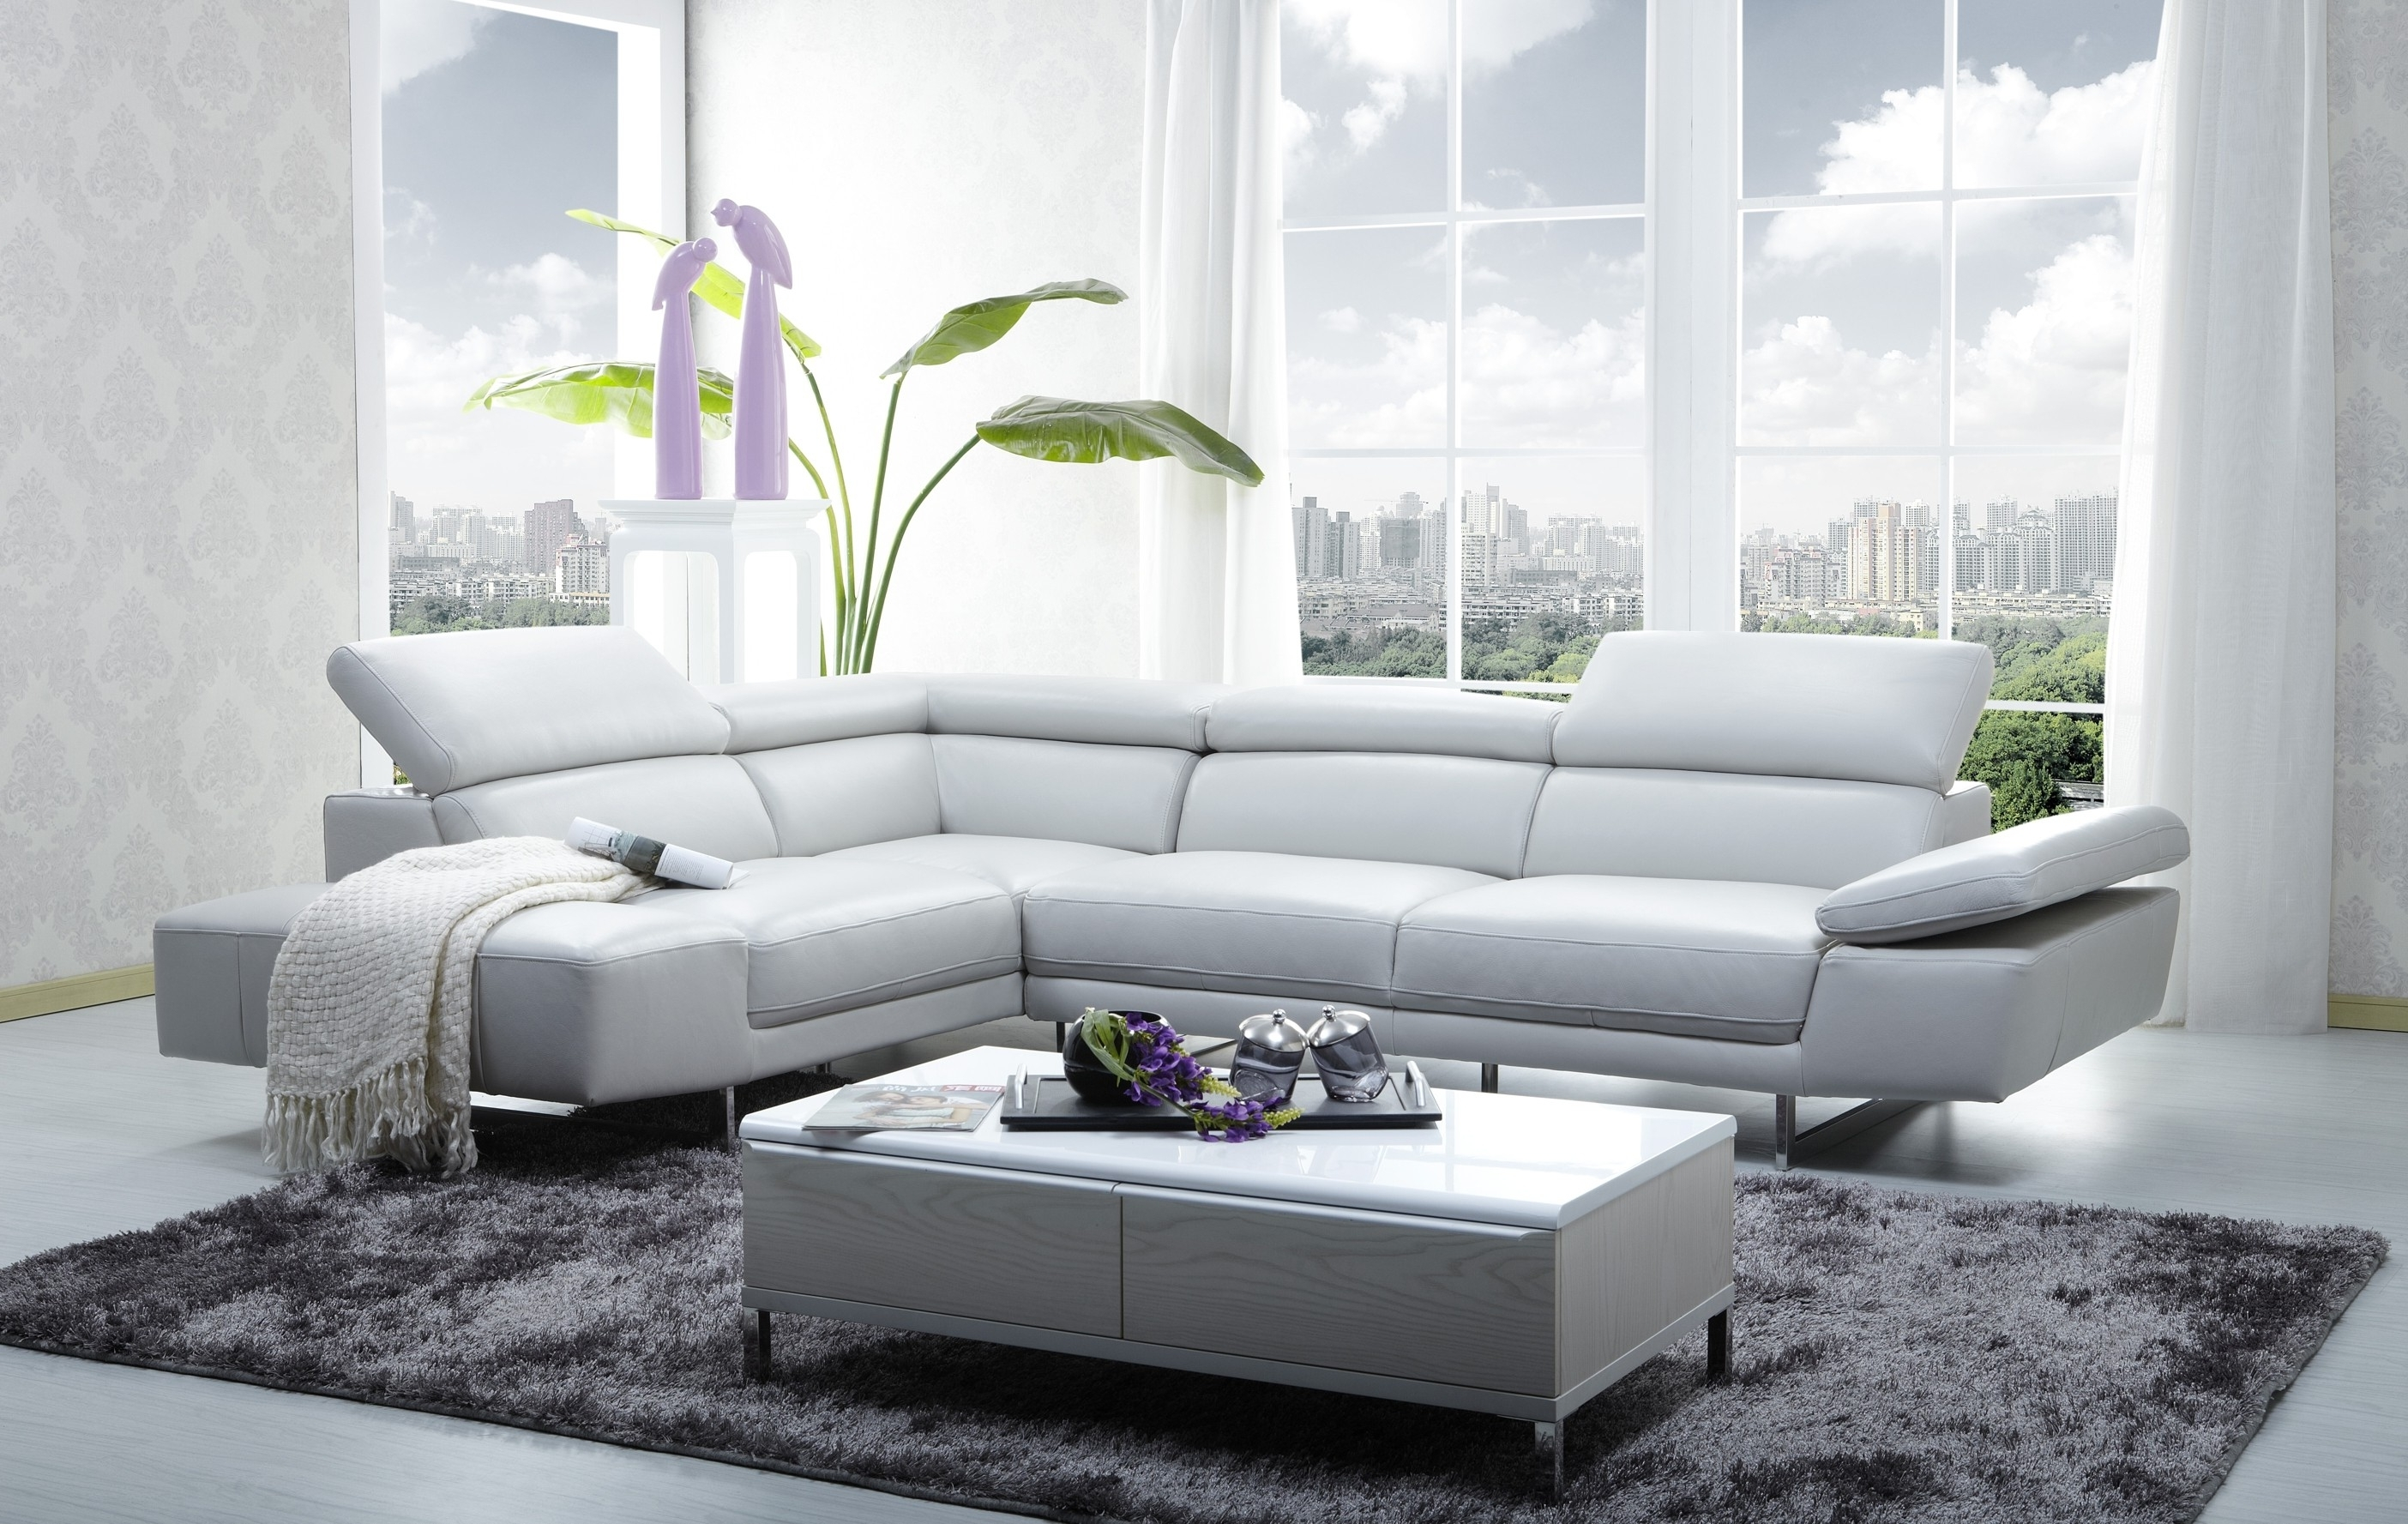 Modern Sofas With Regard To 2018 1717 Italian Leather Modern Sectional Sofa (View 12 of 15)